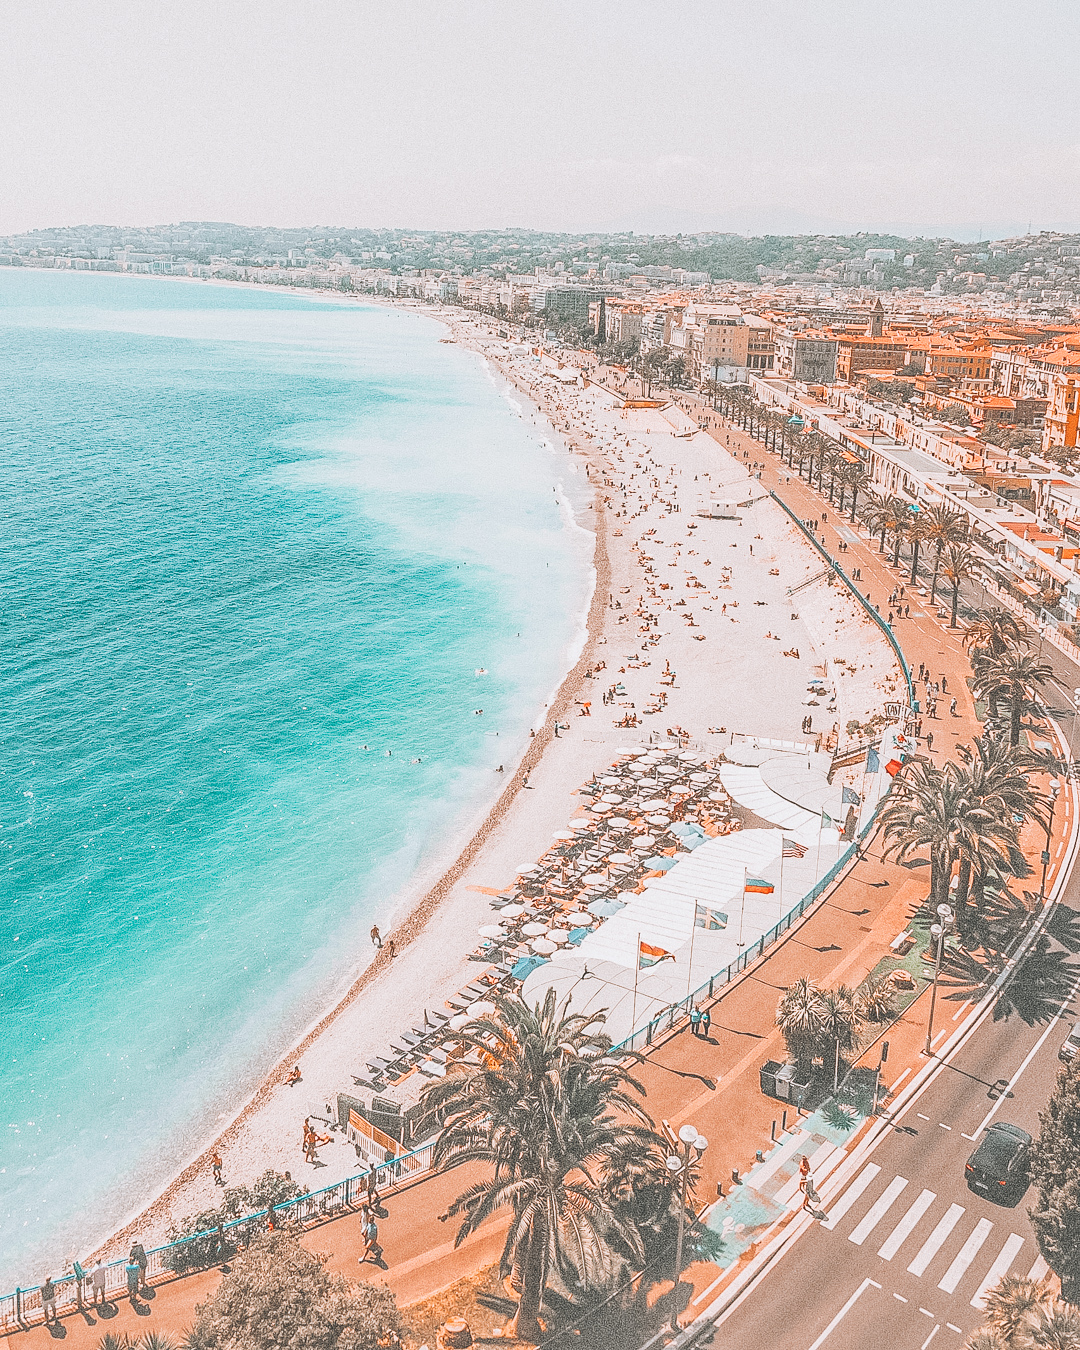 View of Promenade des Anglais in Nice